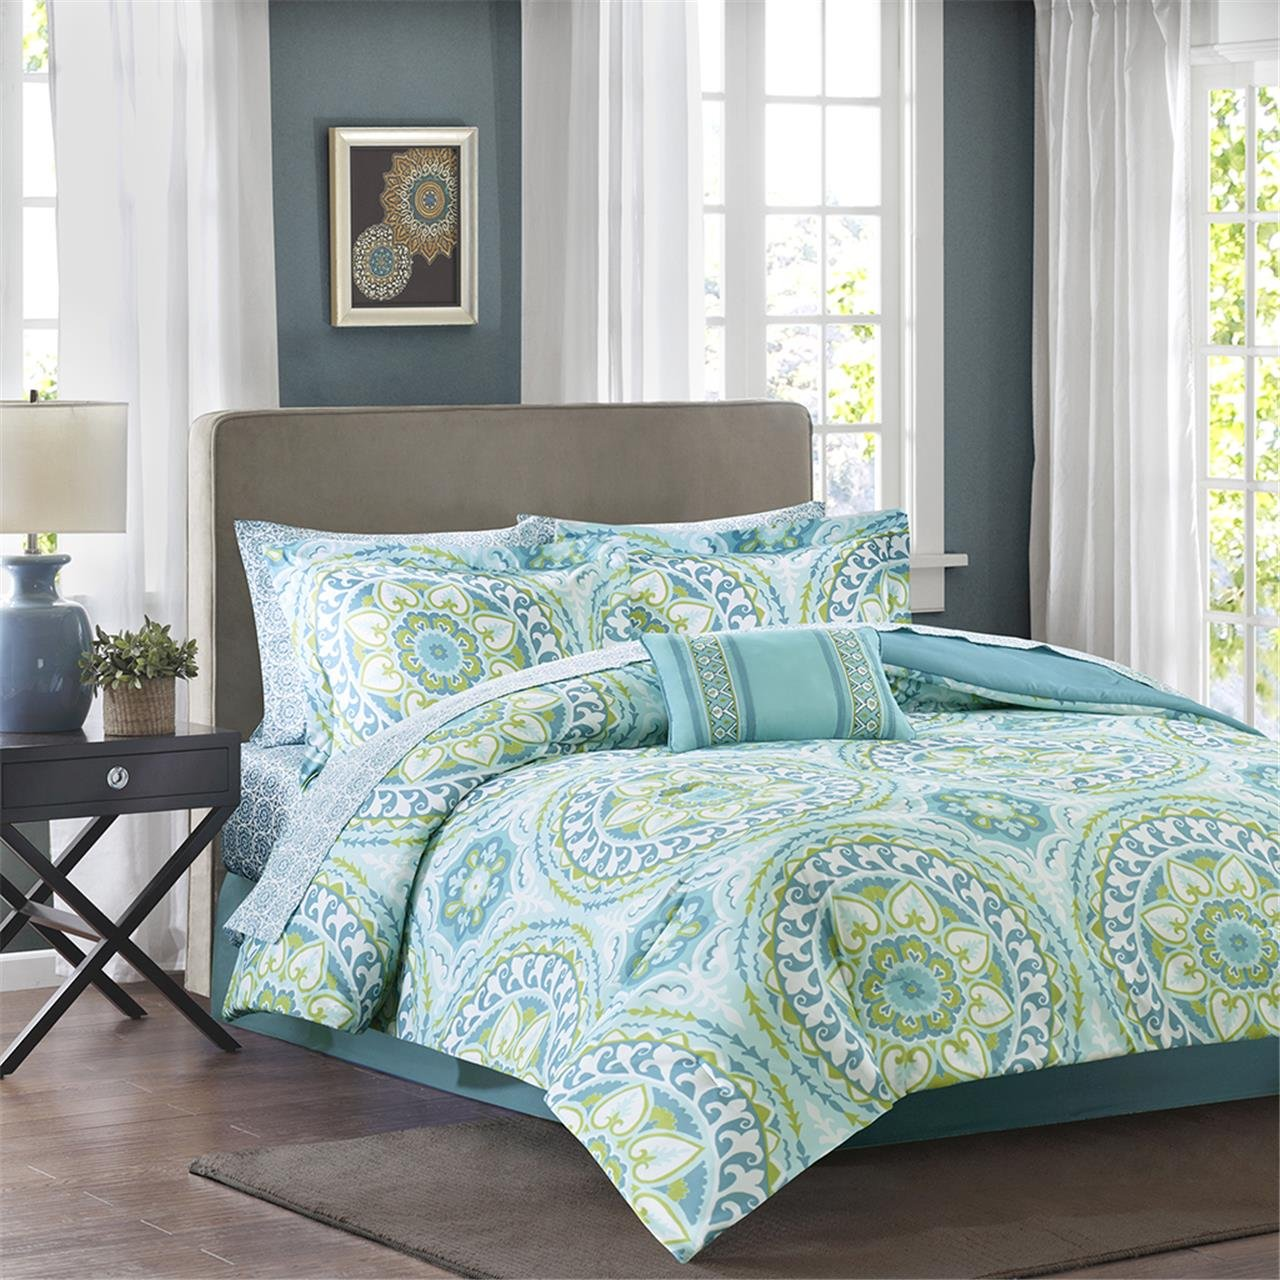 printed scroll paisley comforter king ultra microfiber pc queen bedding bag isla a soft size in bed down set alternative